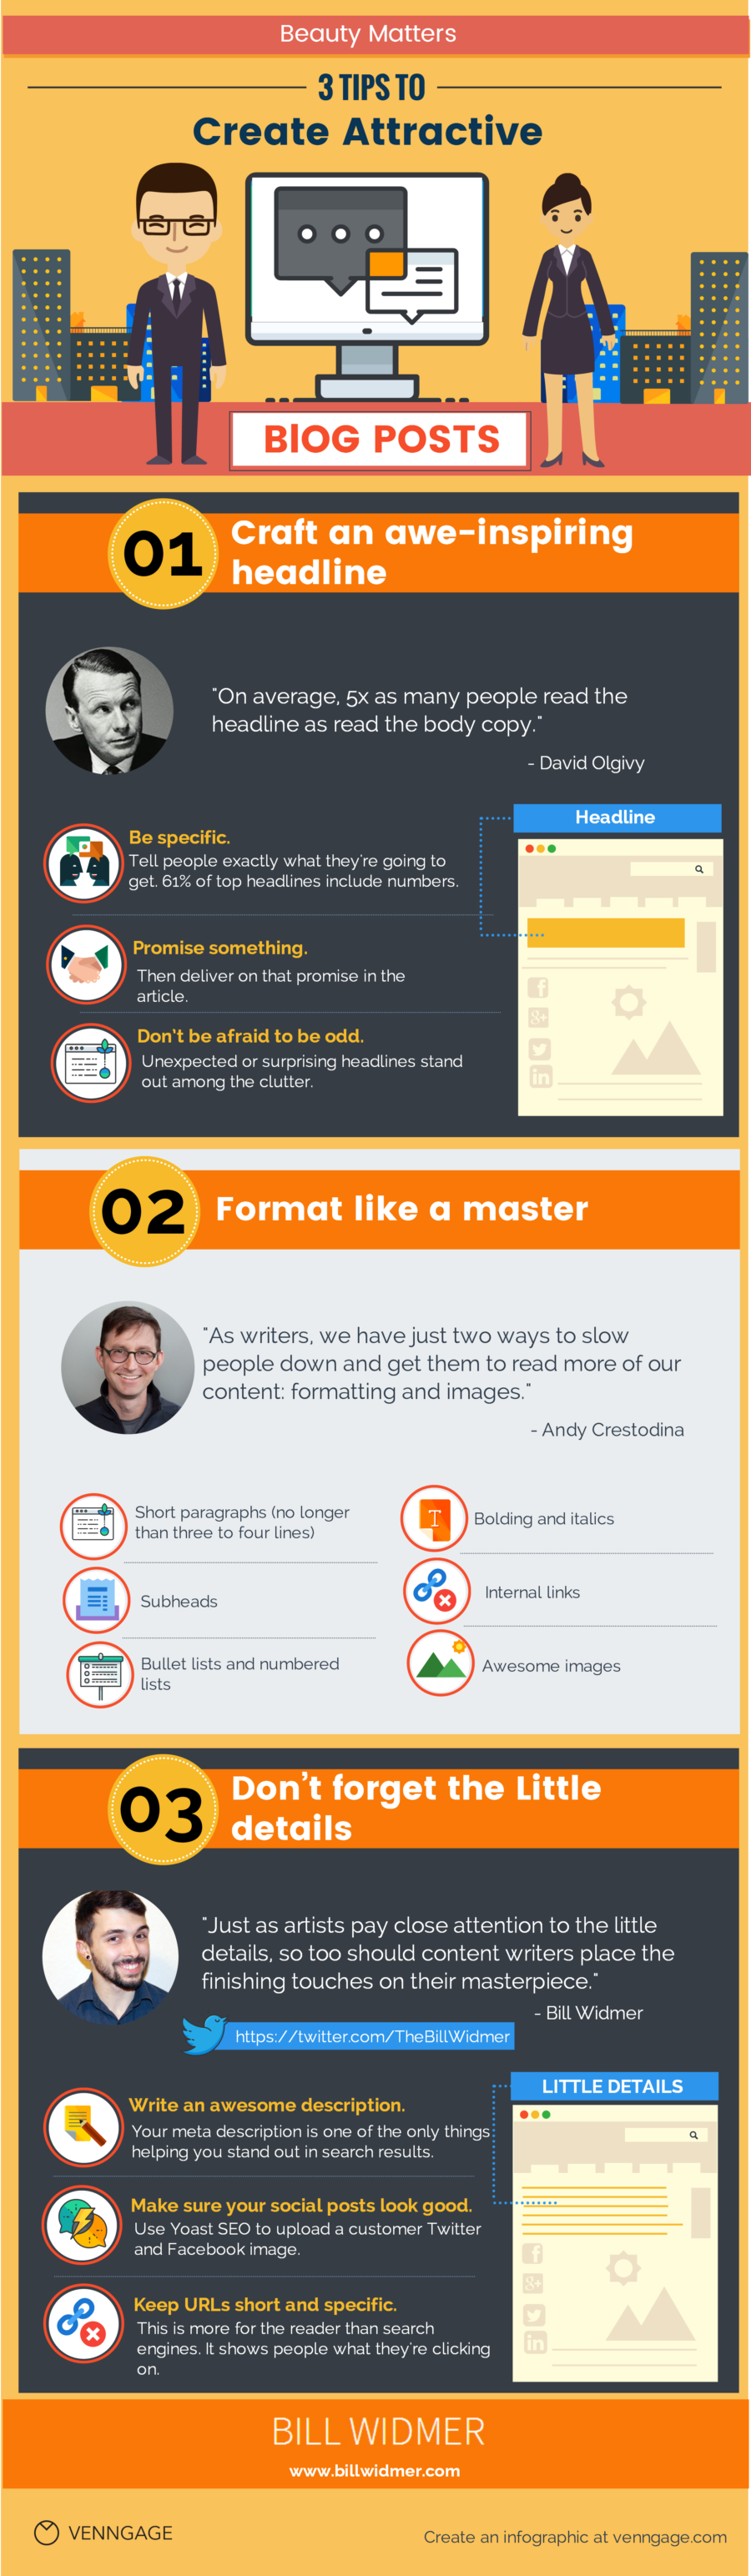 3 Tips to Create Attractive Blog Posts [Infographic]